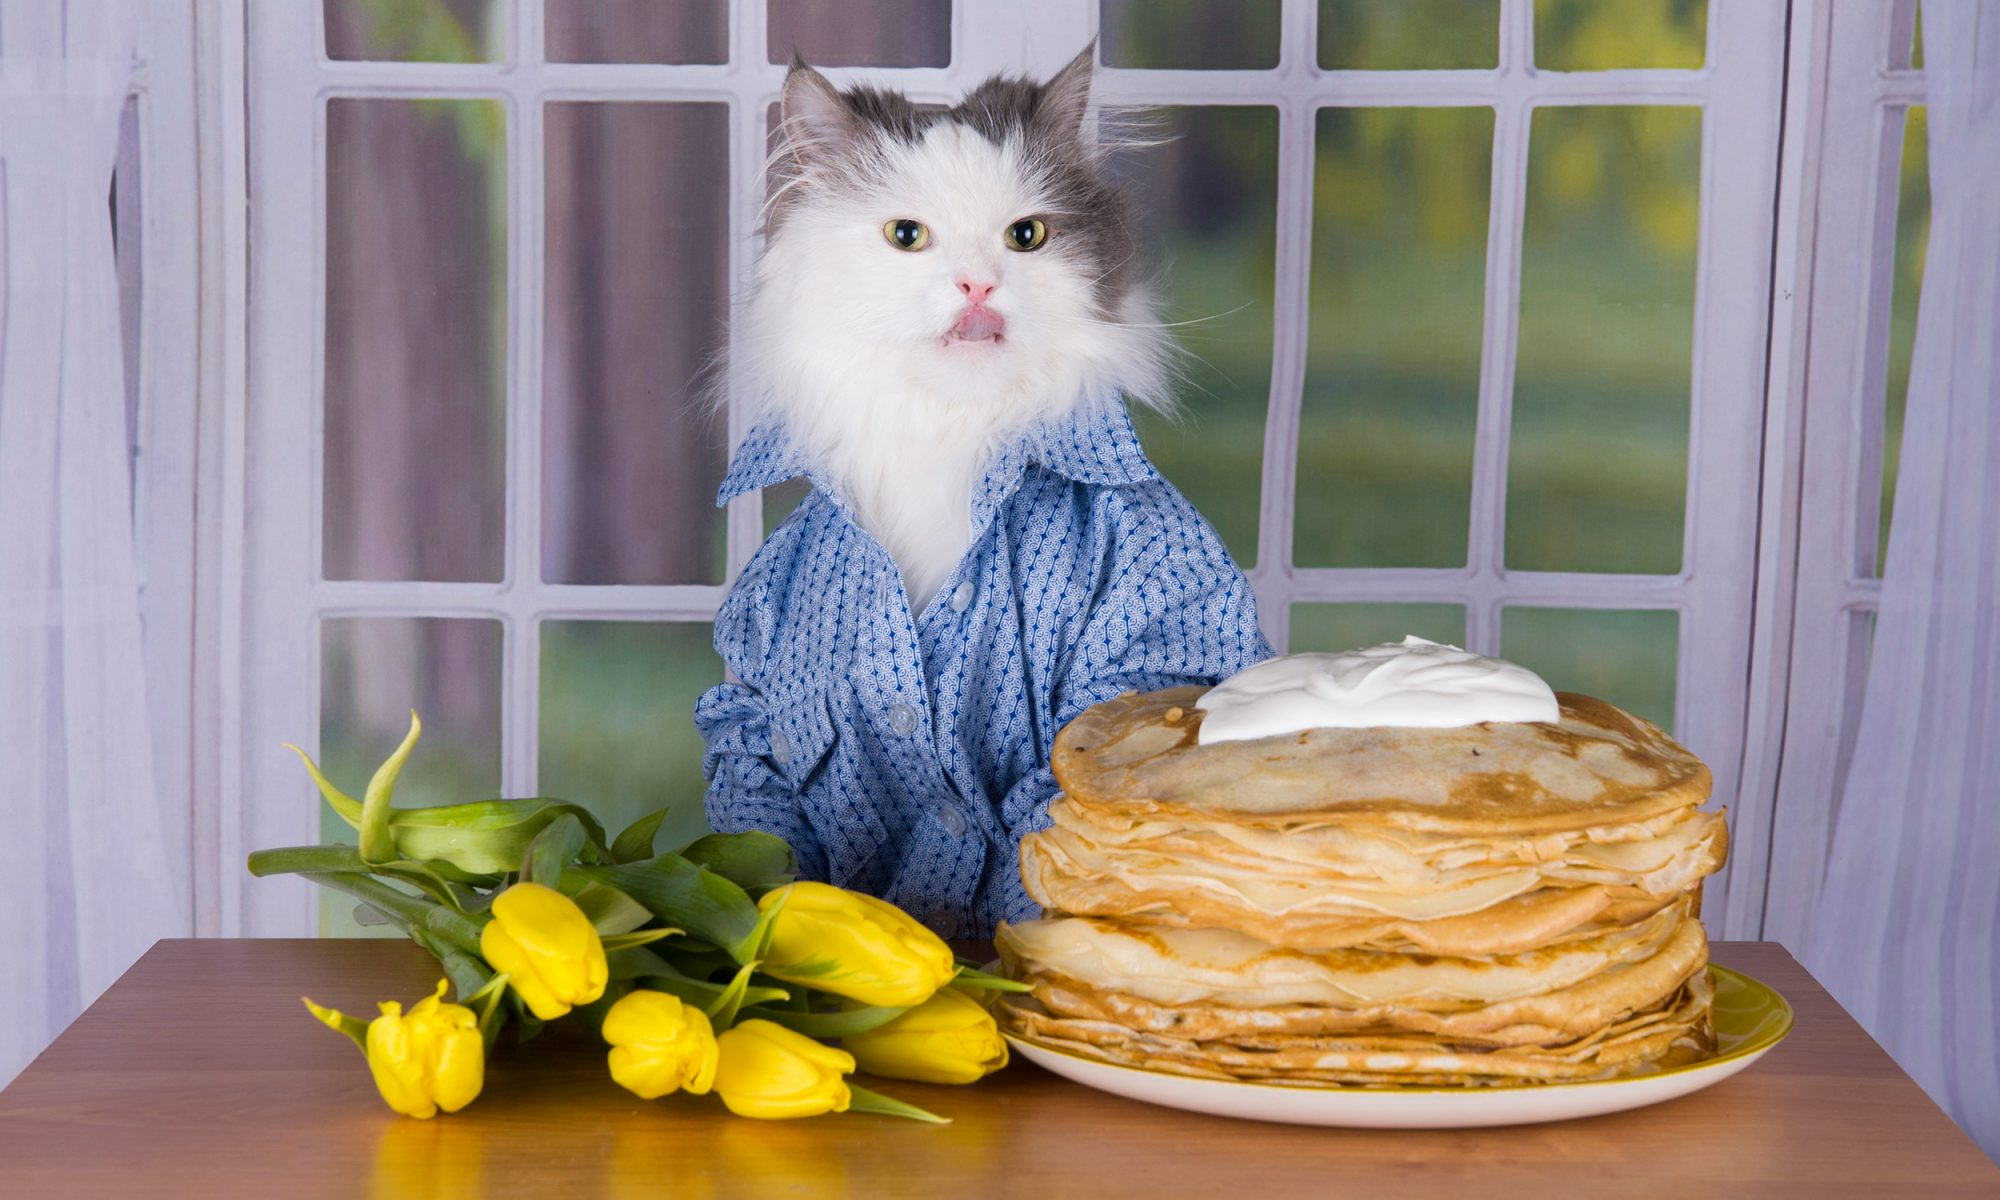 EC: These Videos of Cute Animals Eating Pancakes Will Make Things Feel OK